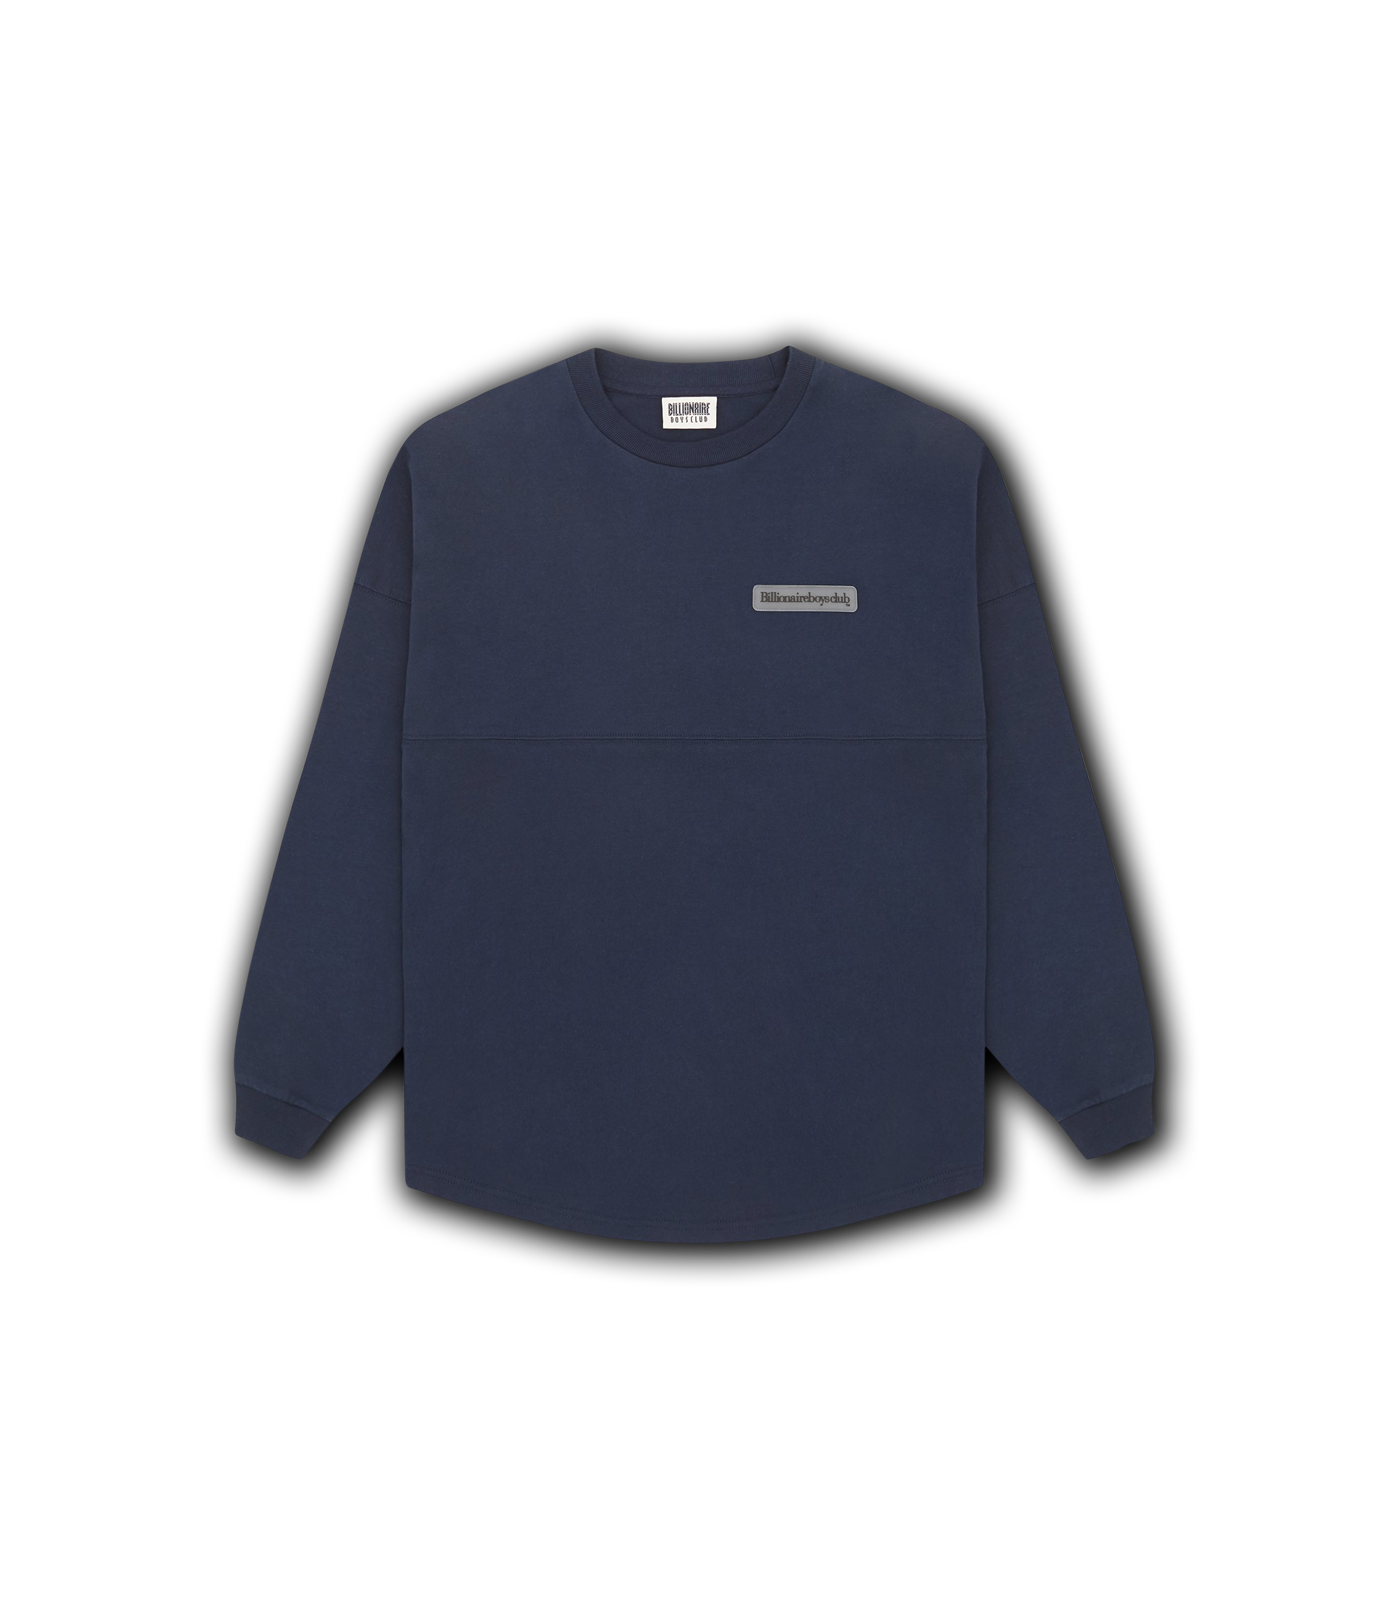 RUBBER PATCH L/S T-SHIRT - NAVY